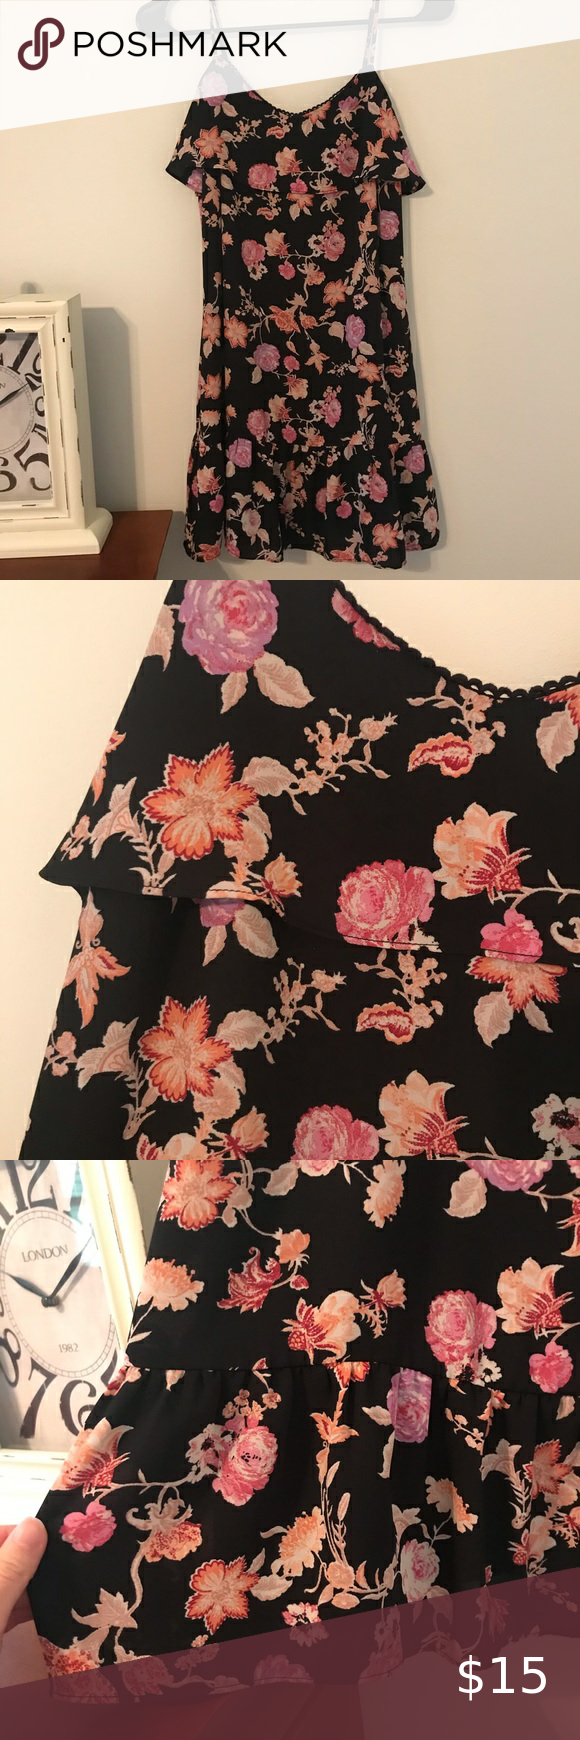 Floral Dress Black Floral Dress From Target Worn Once Or Twice In Great Condition Ruffle Like Bottom Xhilaration Dres Floral Dress Black Floral Dress Floral [ 1740 x 580 Pixel ]